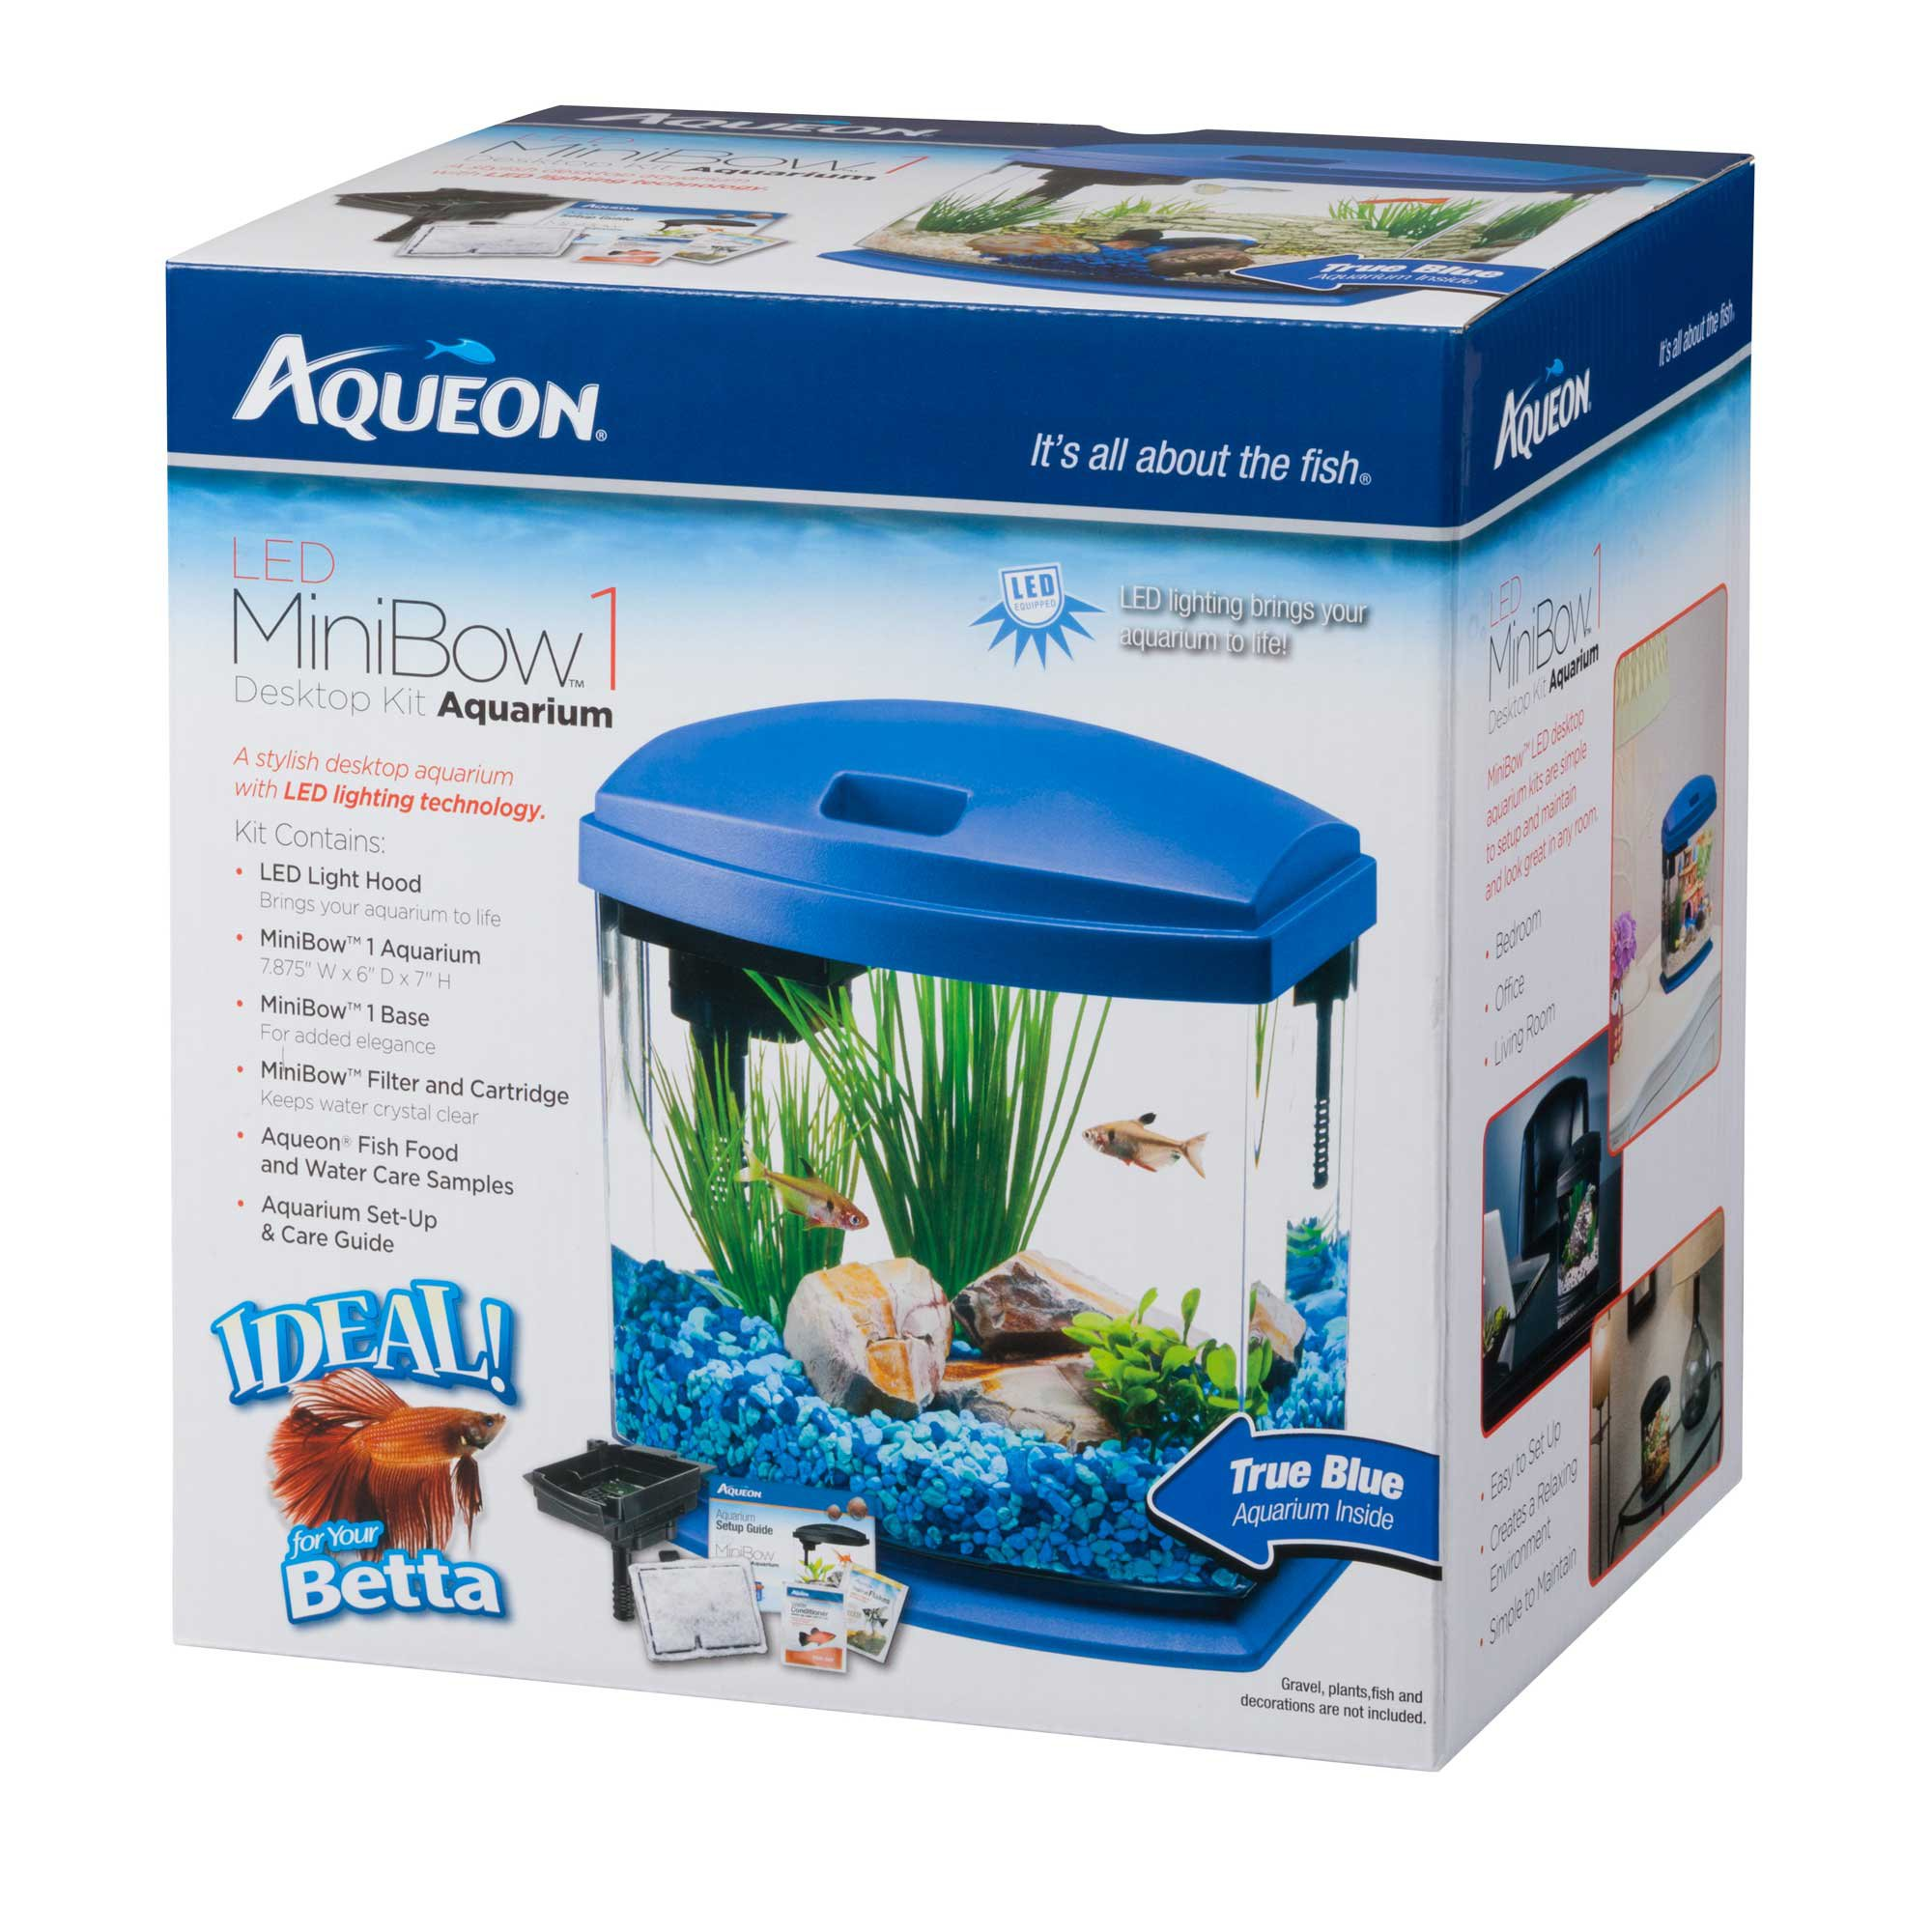 Aqueon minibow blue led desktop fish aquarium kit petco for Aqueon fish tank